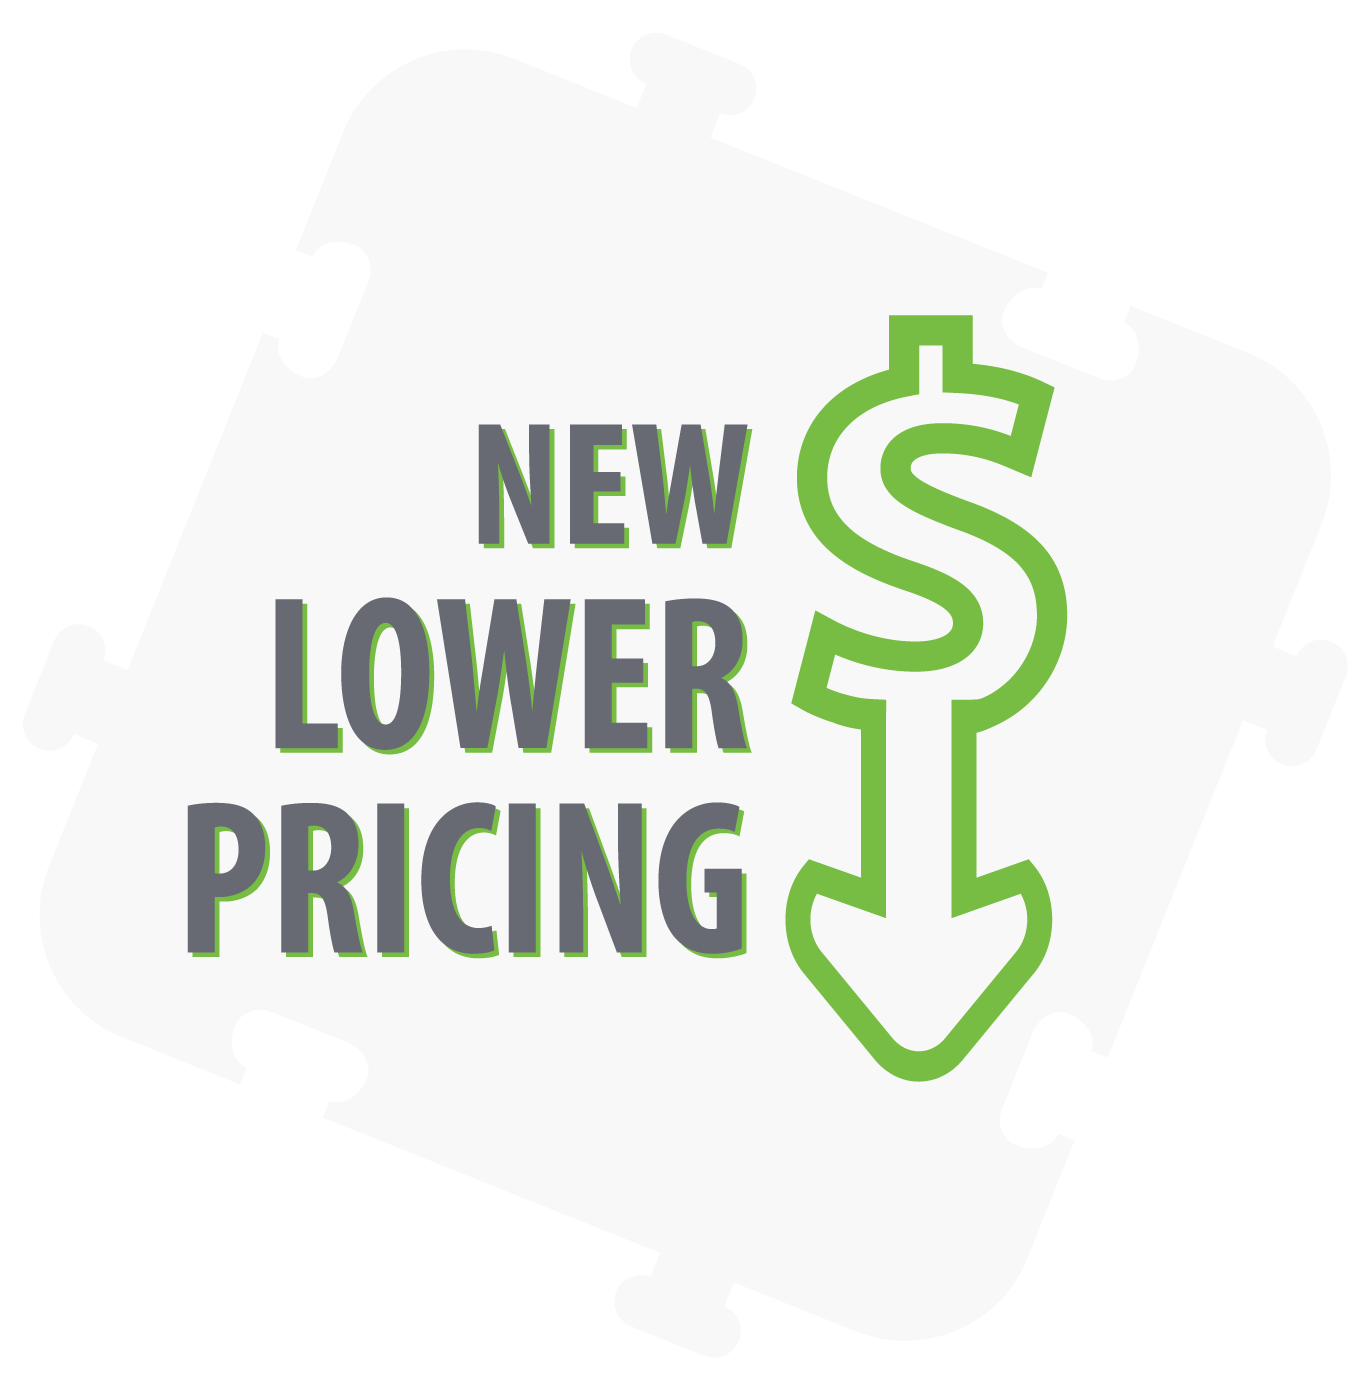 New Lower Pricing